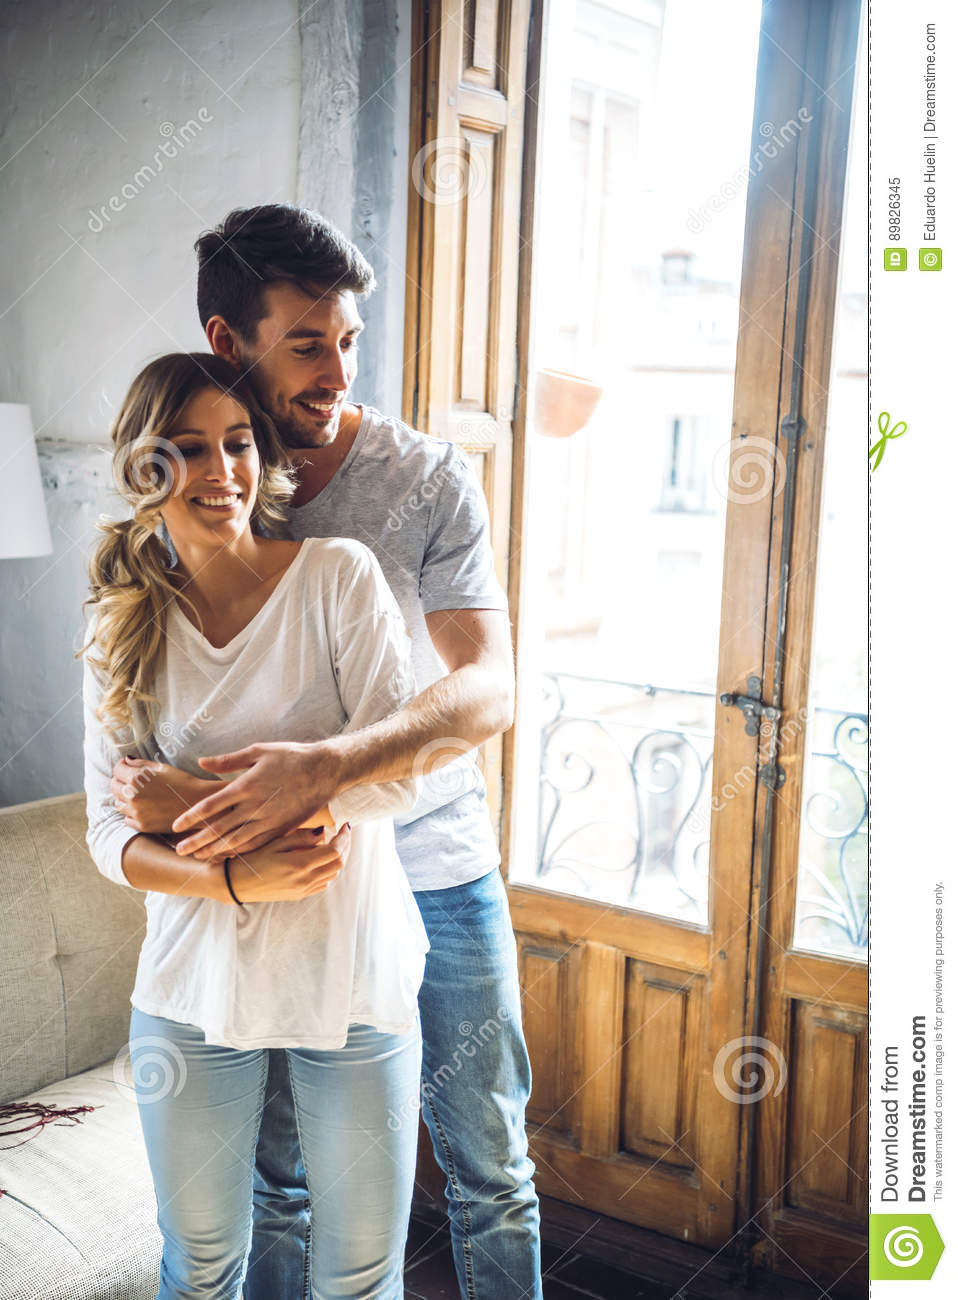 Beautiful Couple Embracing In Dance Stock Image - Image of apartment ...